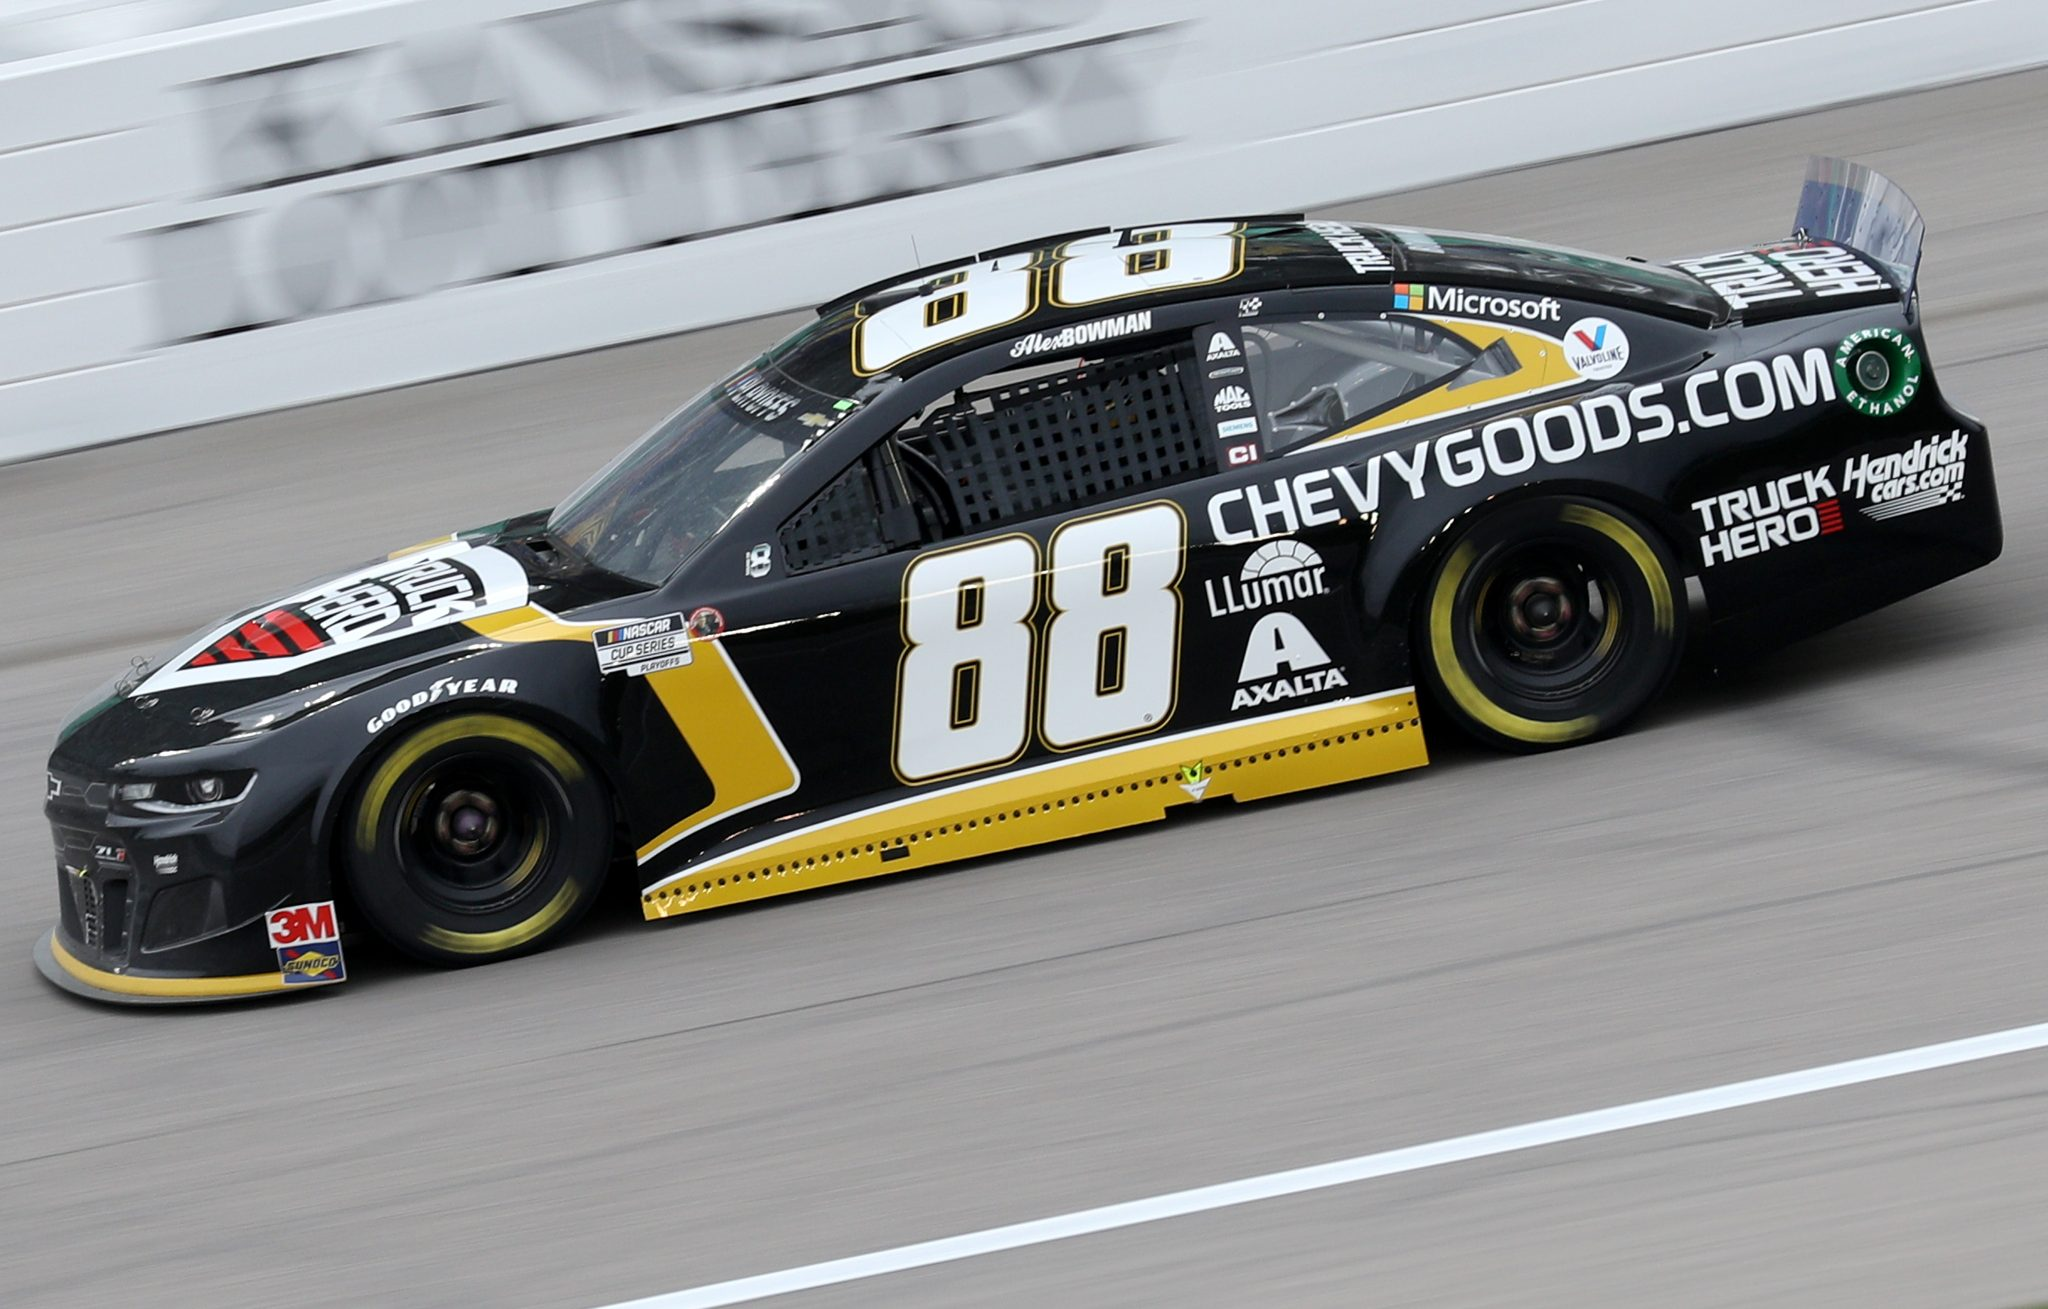 KANSAS CITY, KANSAS - OCTOBER 18: Alex Bowman, driver of the #88 ChevyGoods.com/Truck Hero Chevrolet, drives during the NASCAR Cup Series Hollywood Casino 400 at Kansas Speedway on October 18, 2020 in Kansas City, Kansas. (Photo by Chris Graythen/Getty Images) | Getty Images